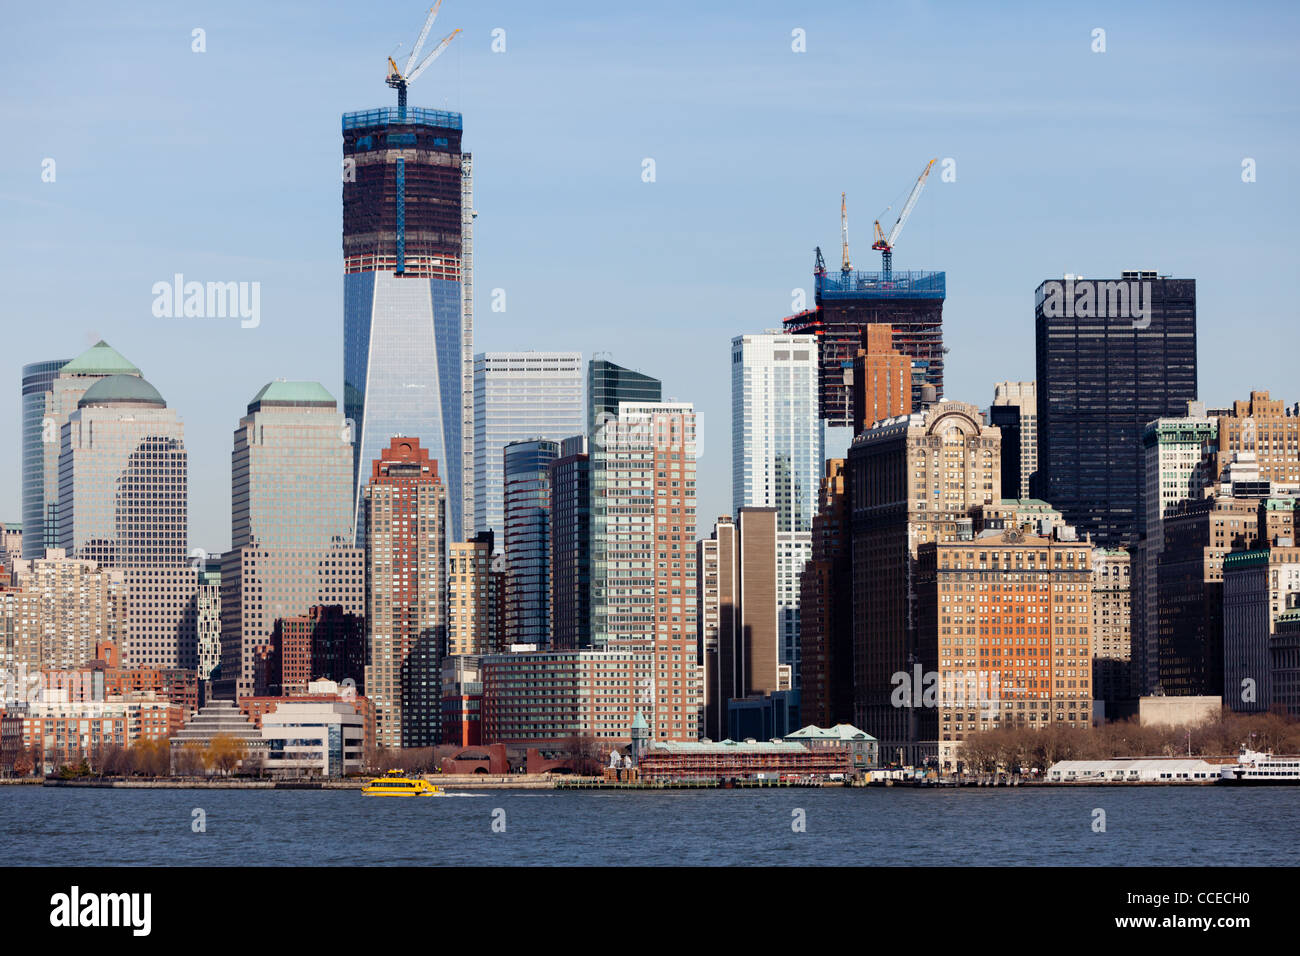 The Manhattan skyline as seen from the Staten Island ferry during the daytime - featuring the new One World Trade - Stock Image